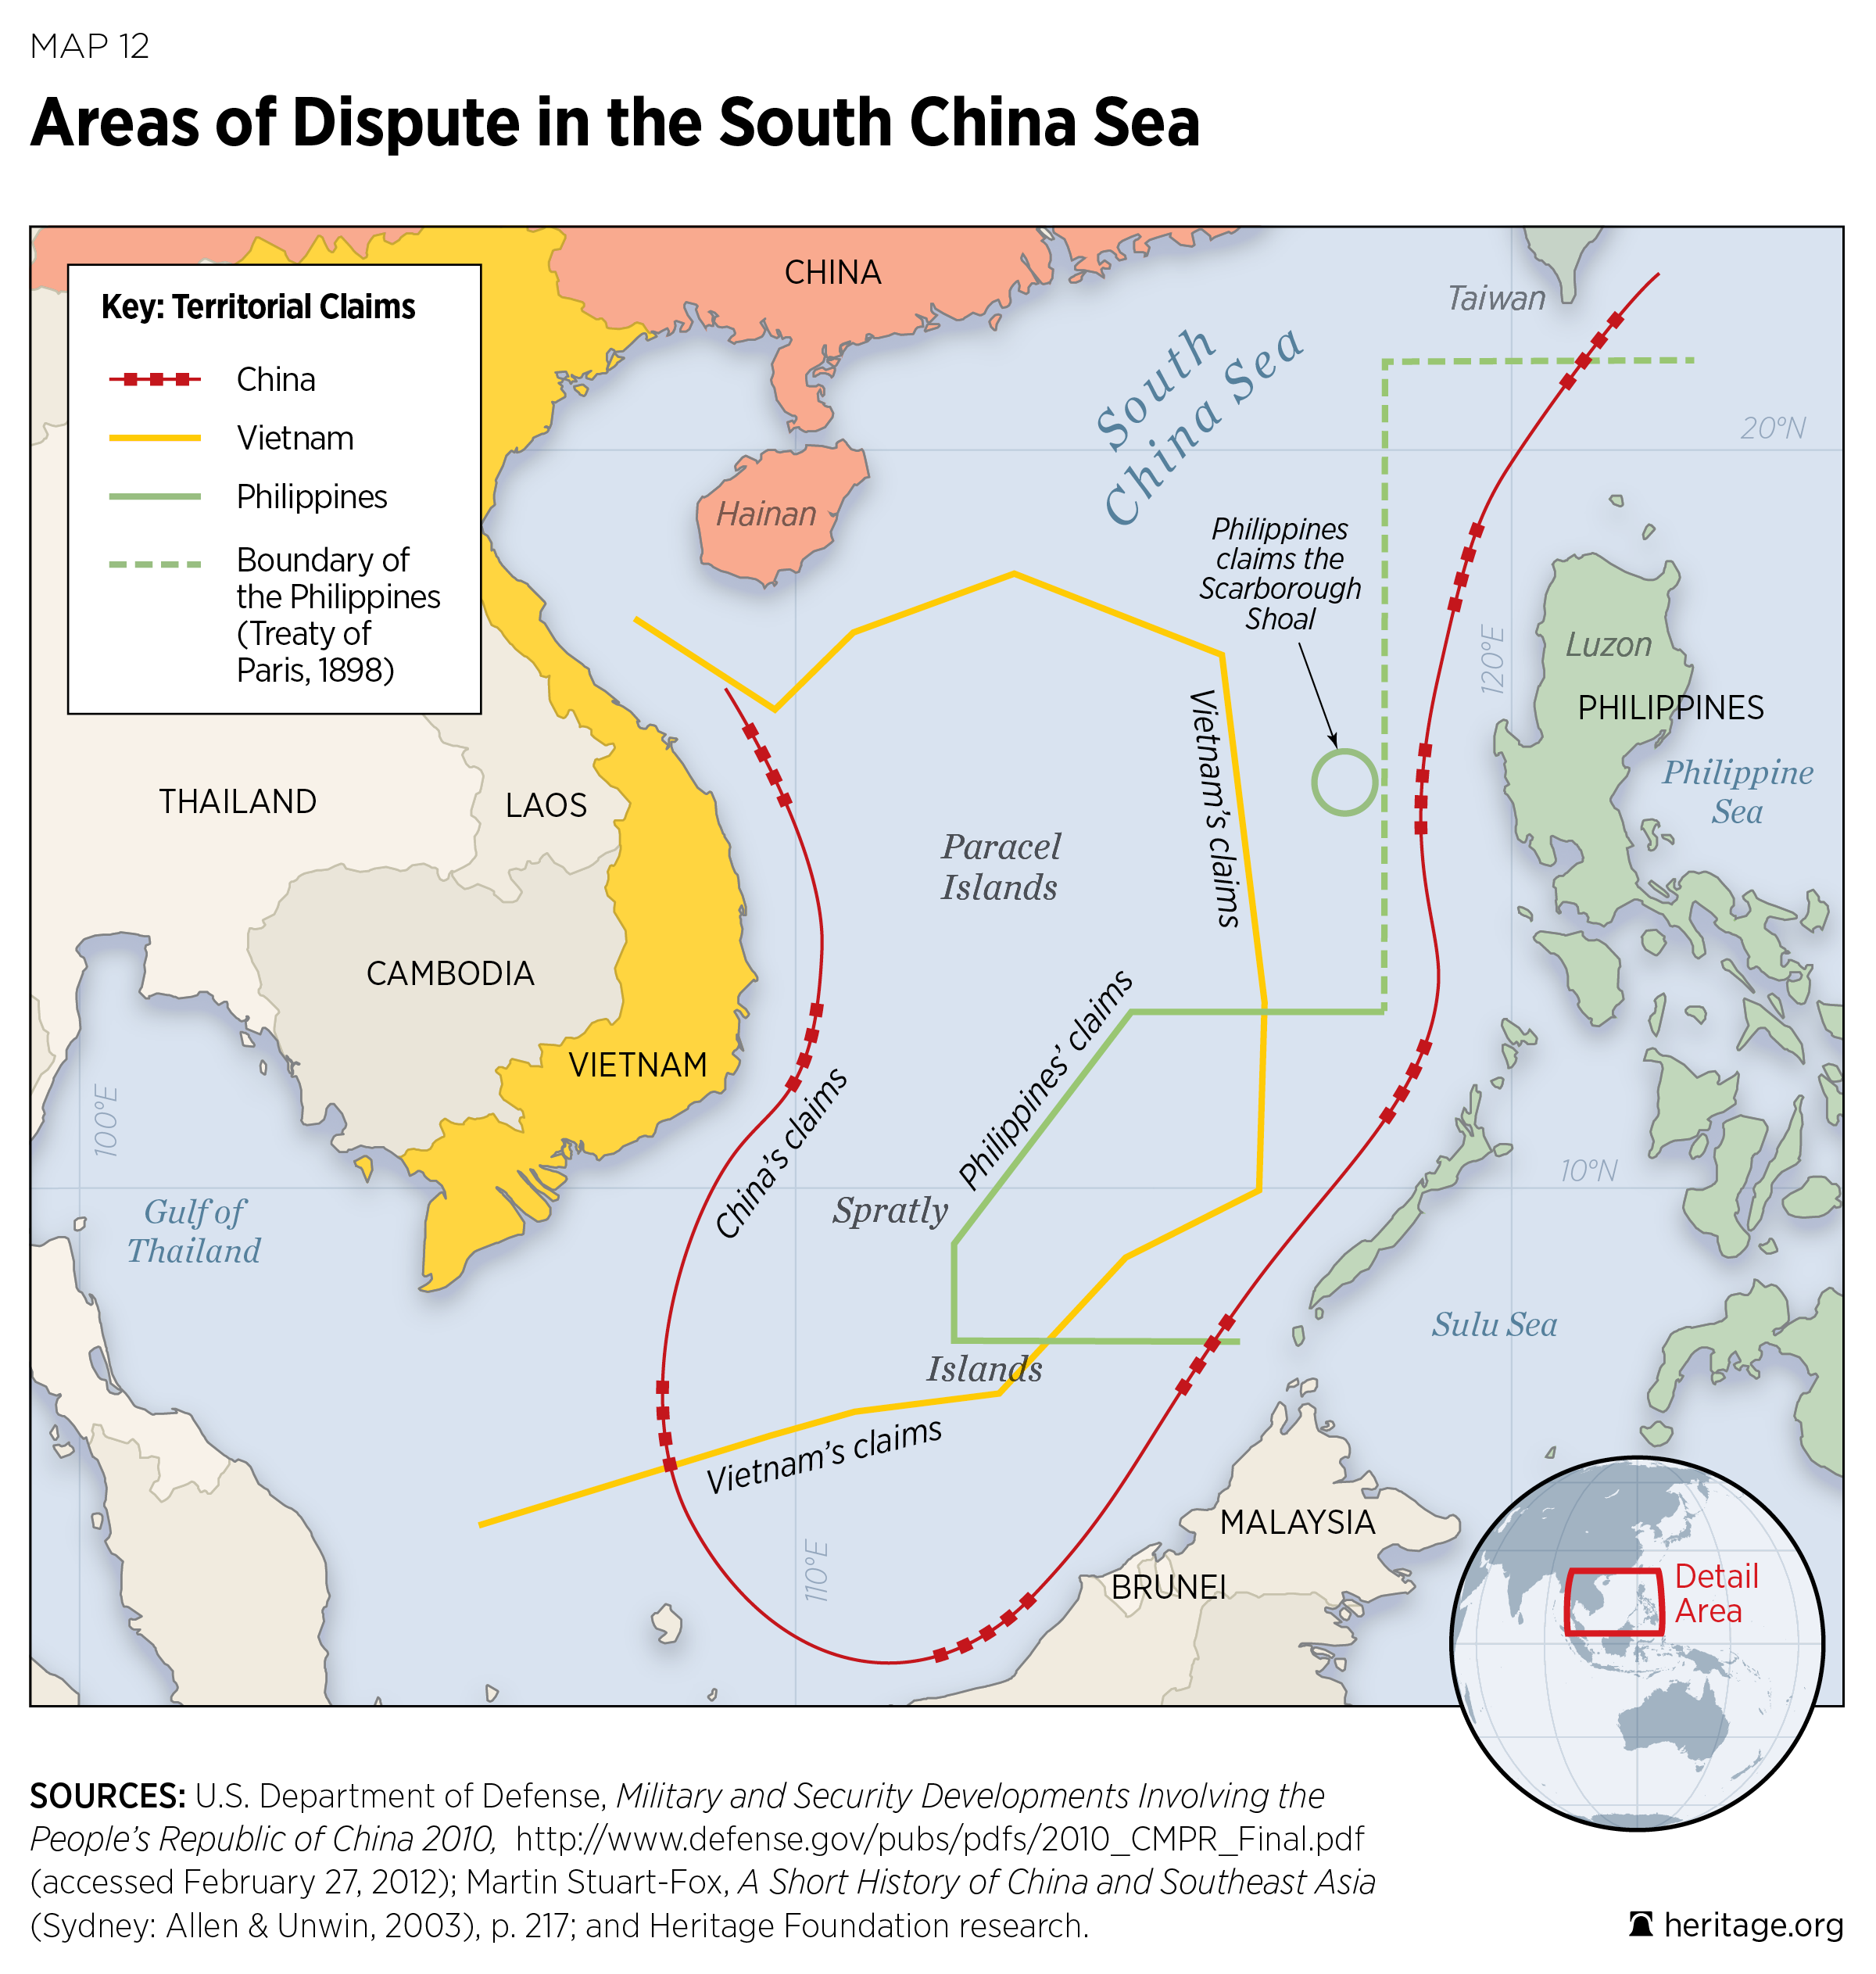 Areas of Dispute in the South China Sea